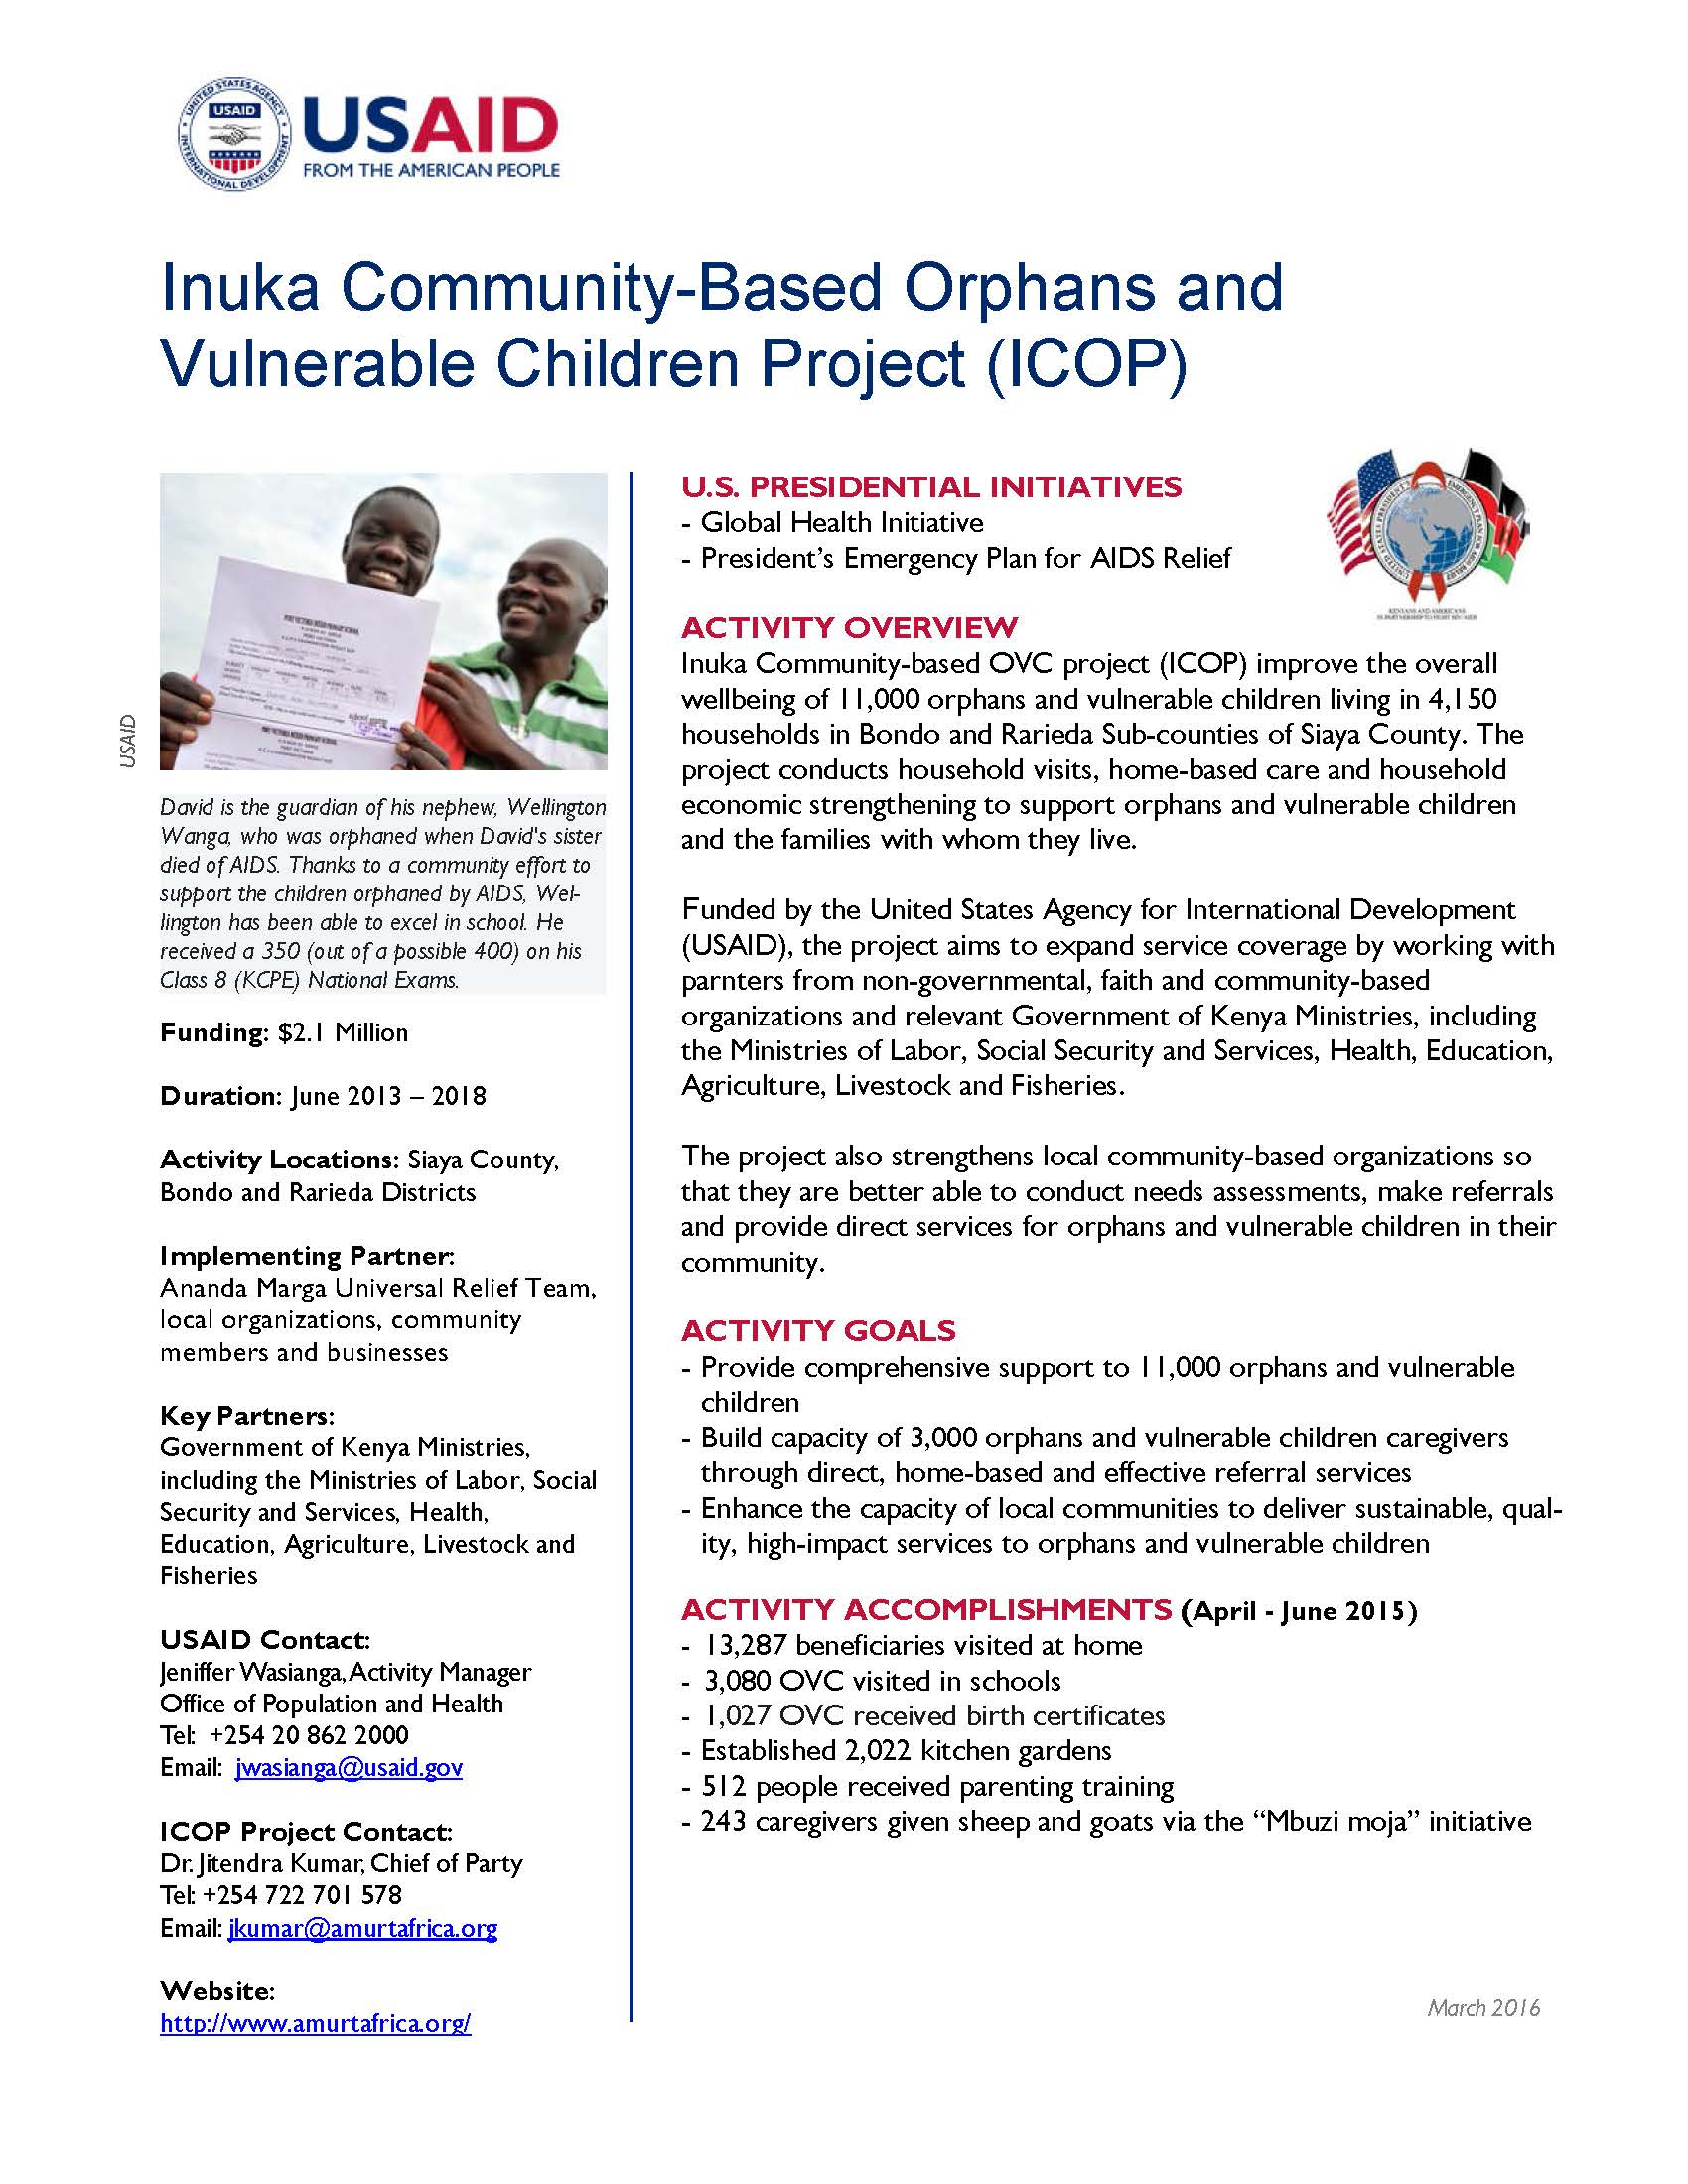 Inuka Community-Based Orphans and Vulnerable Children Project (ICOP)